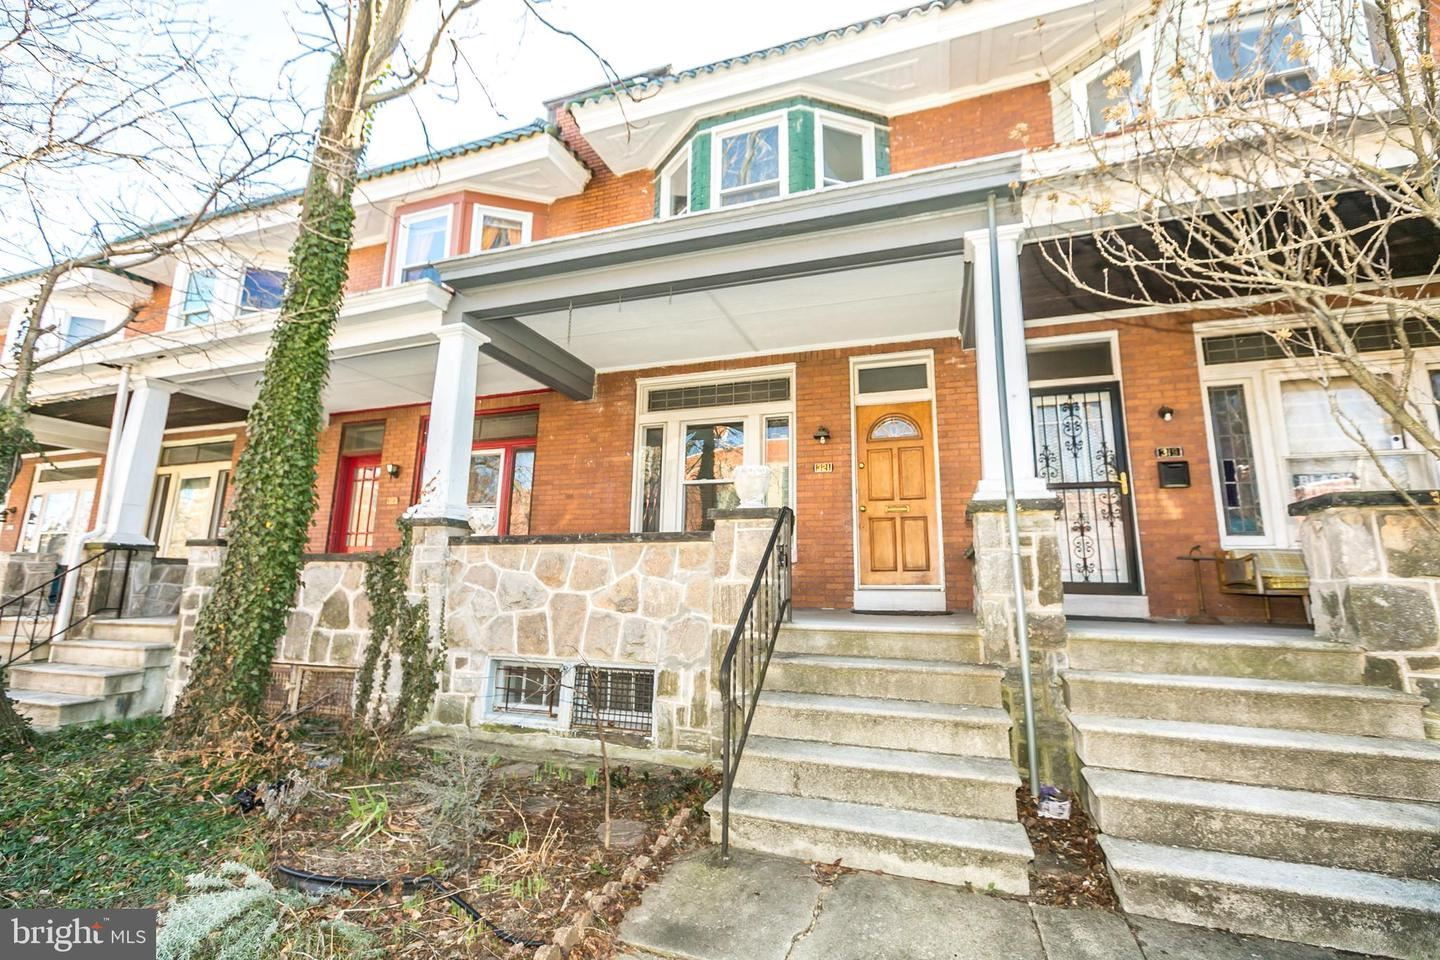 321 E 29TH ST, Baltimore, MD 21218 - MLS#: MDBA541232